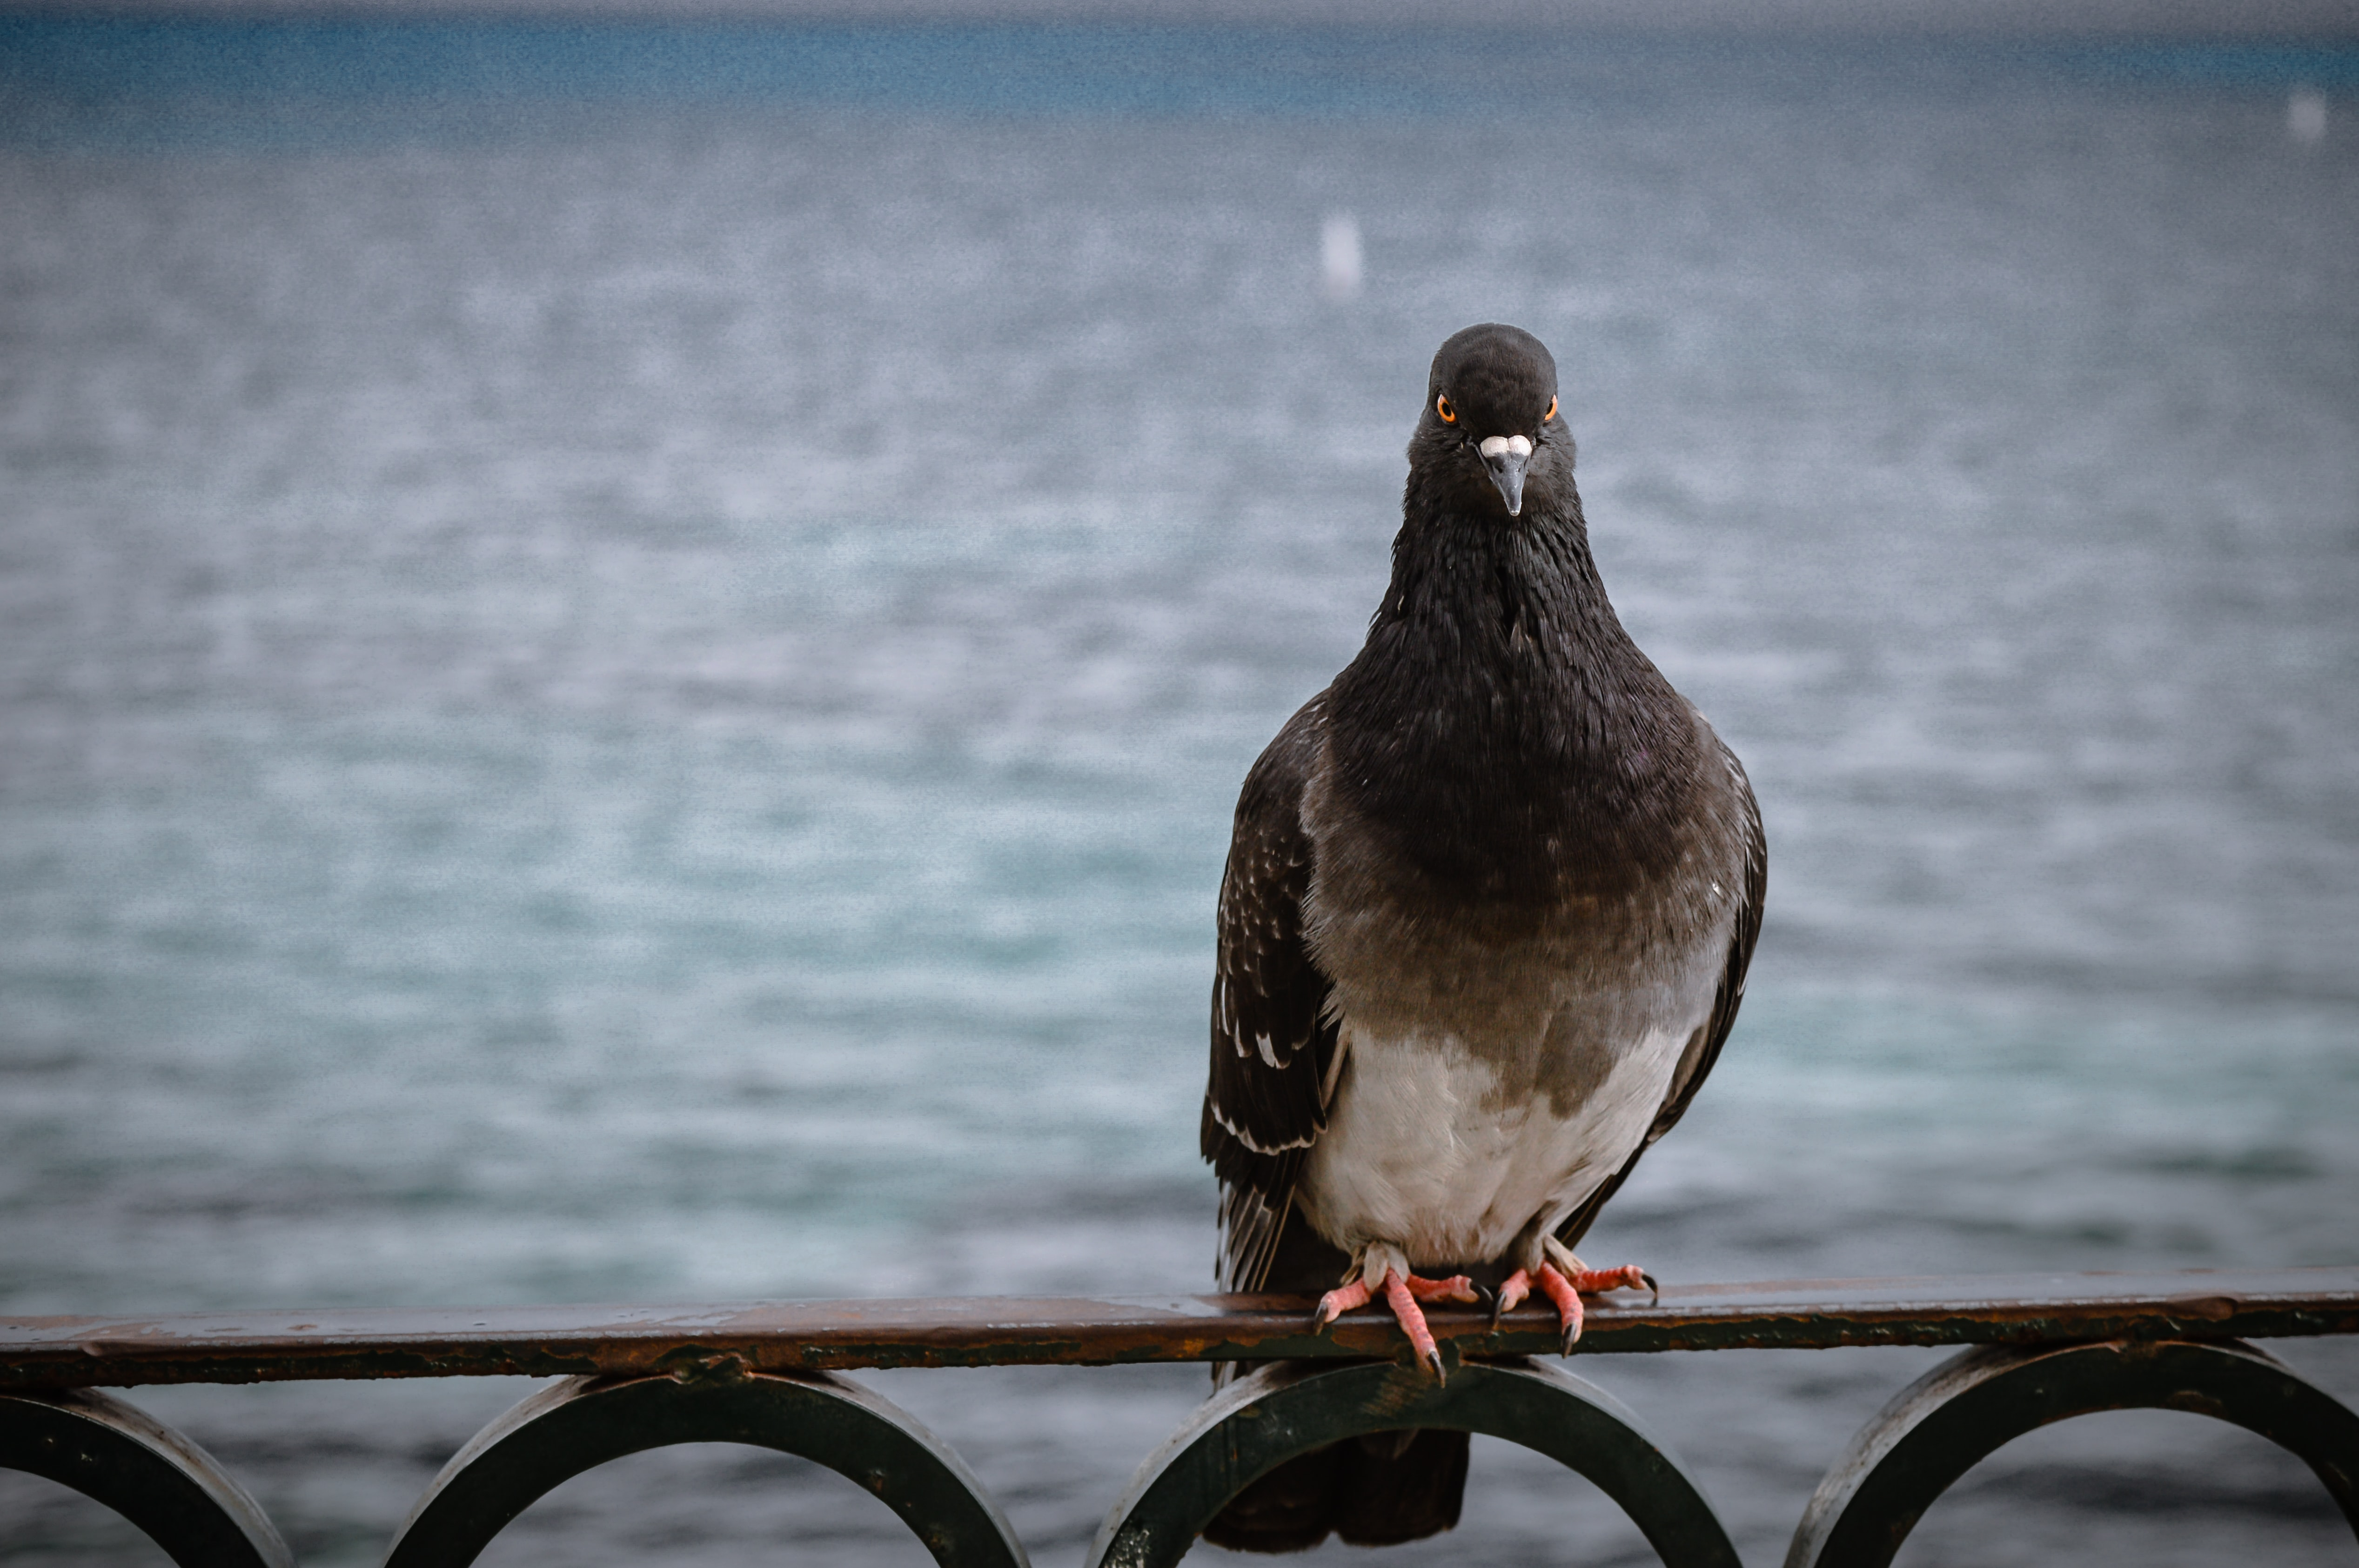 Dark pigeon perched on a metal railing by the sea